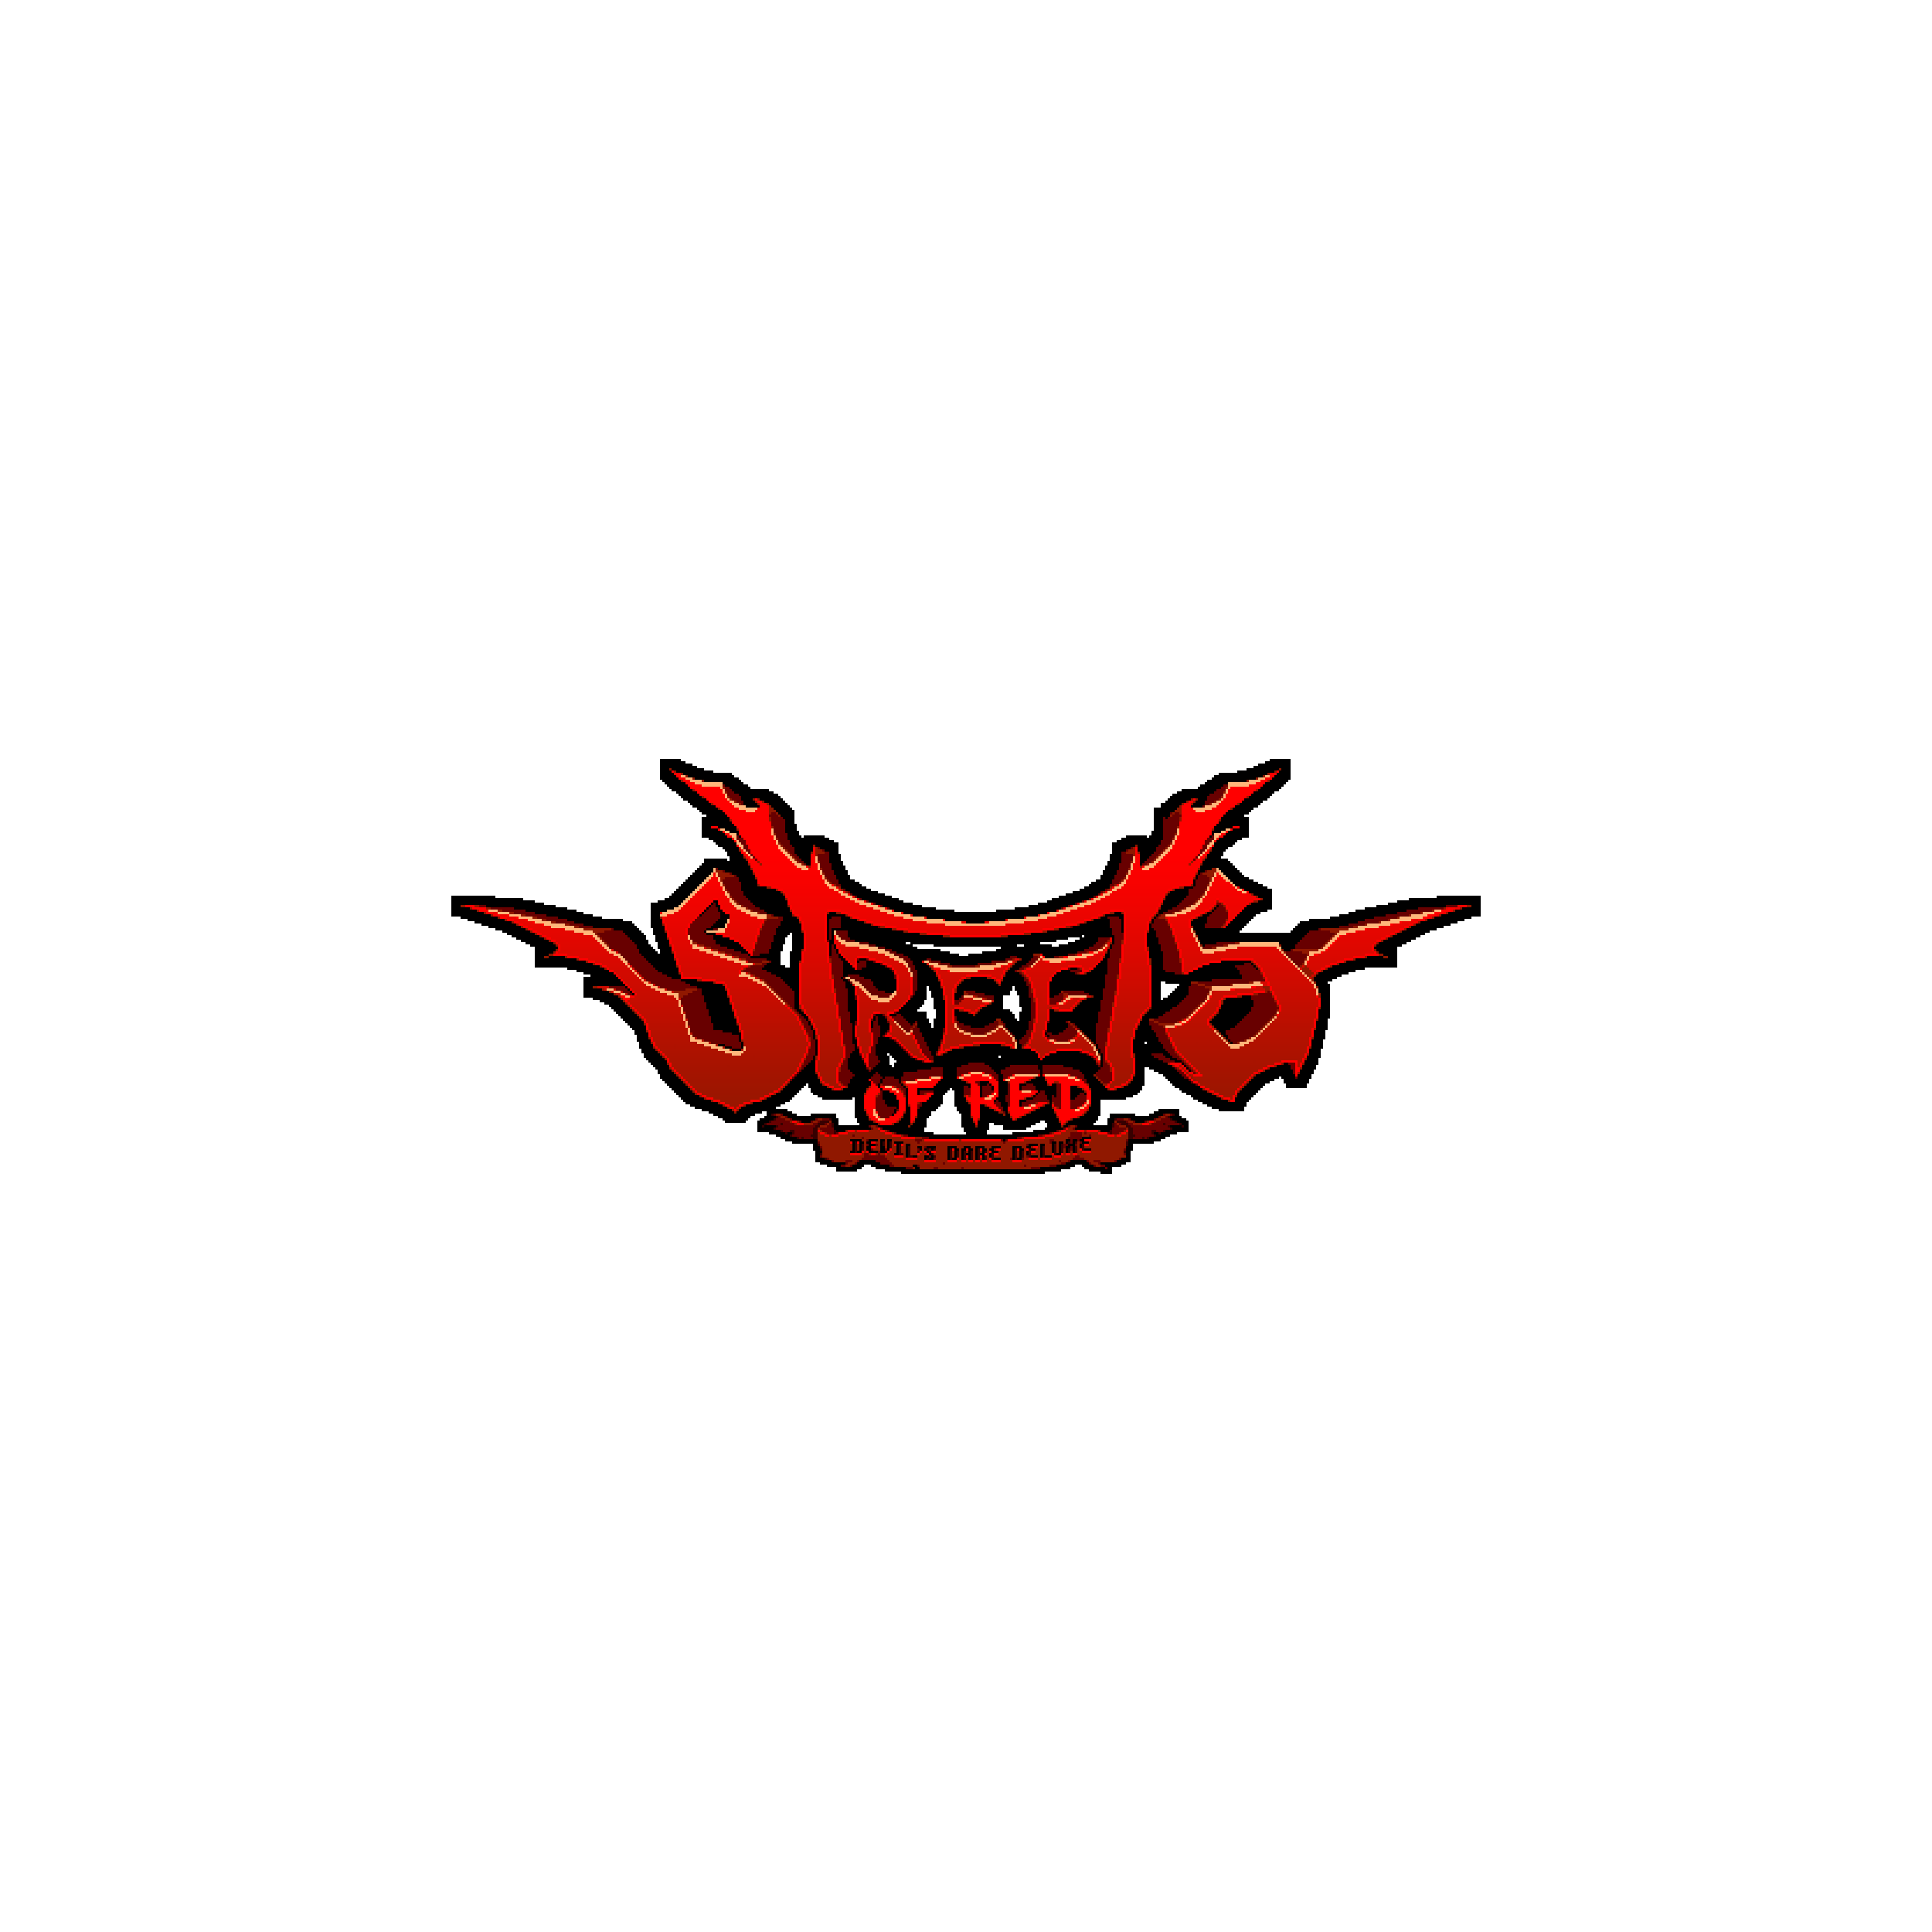 Streets of Red - Devil's Dare Deluxe logo